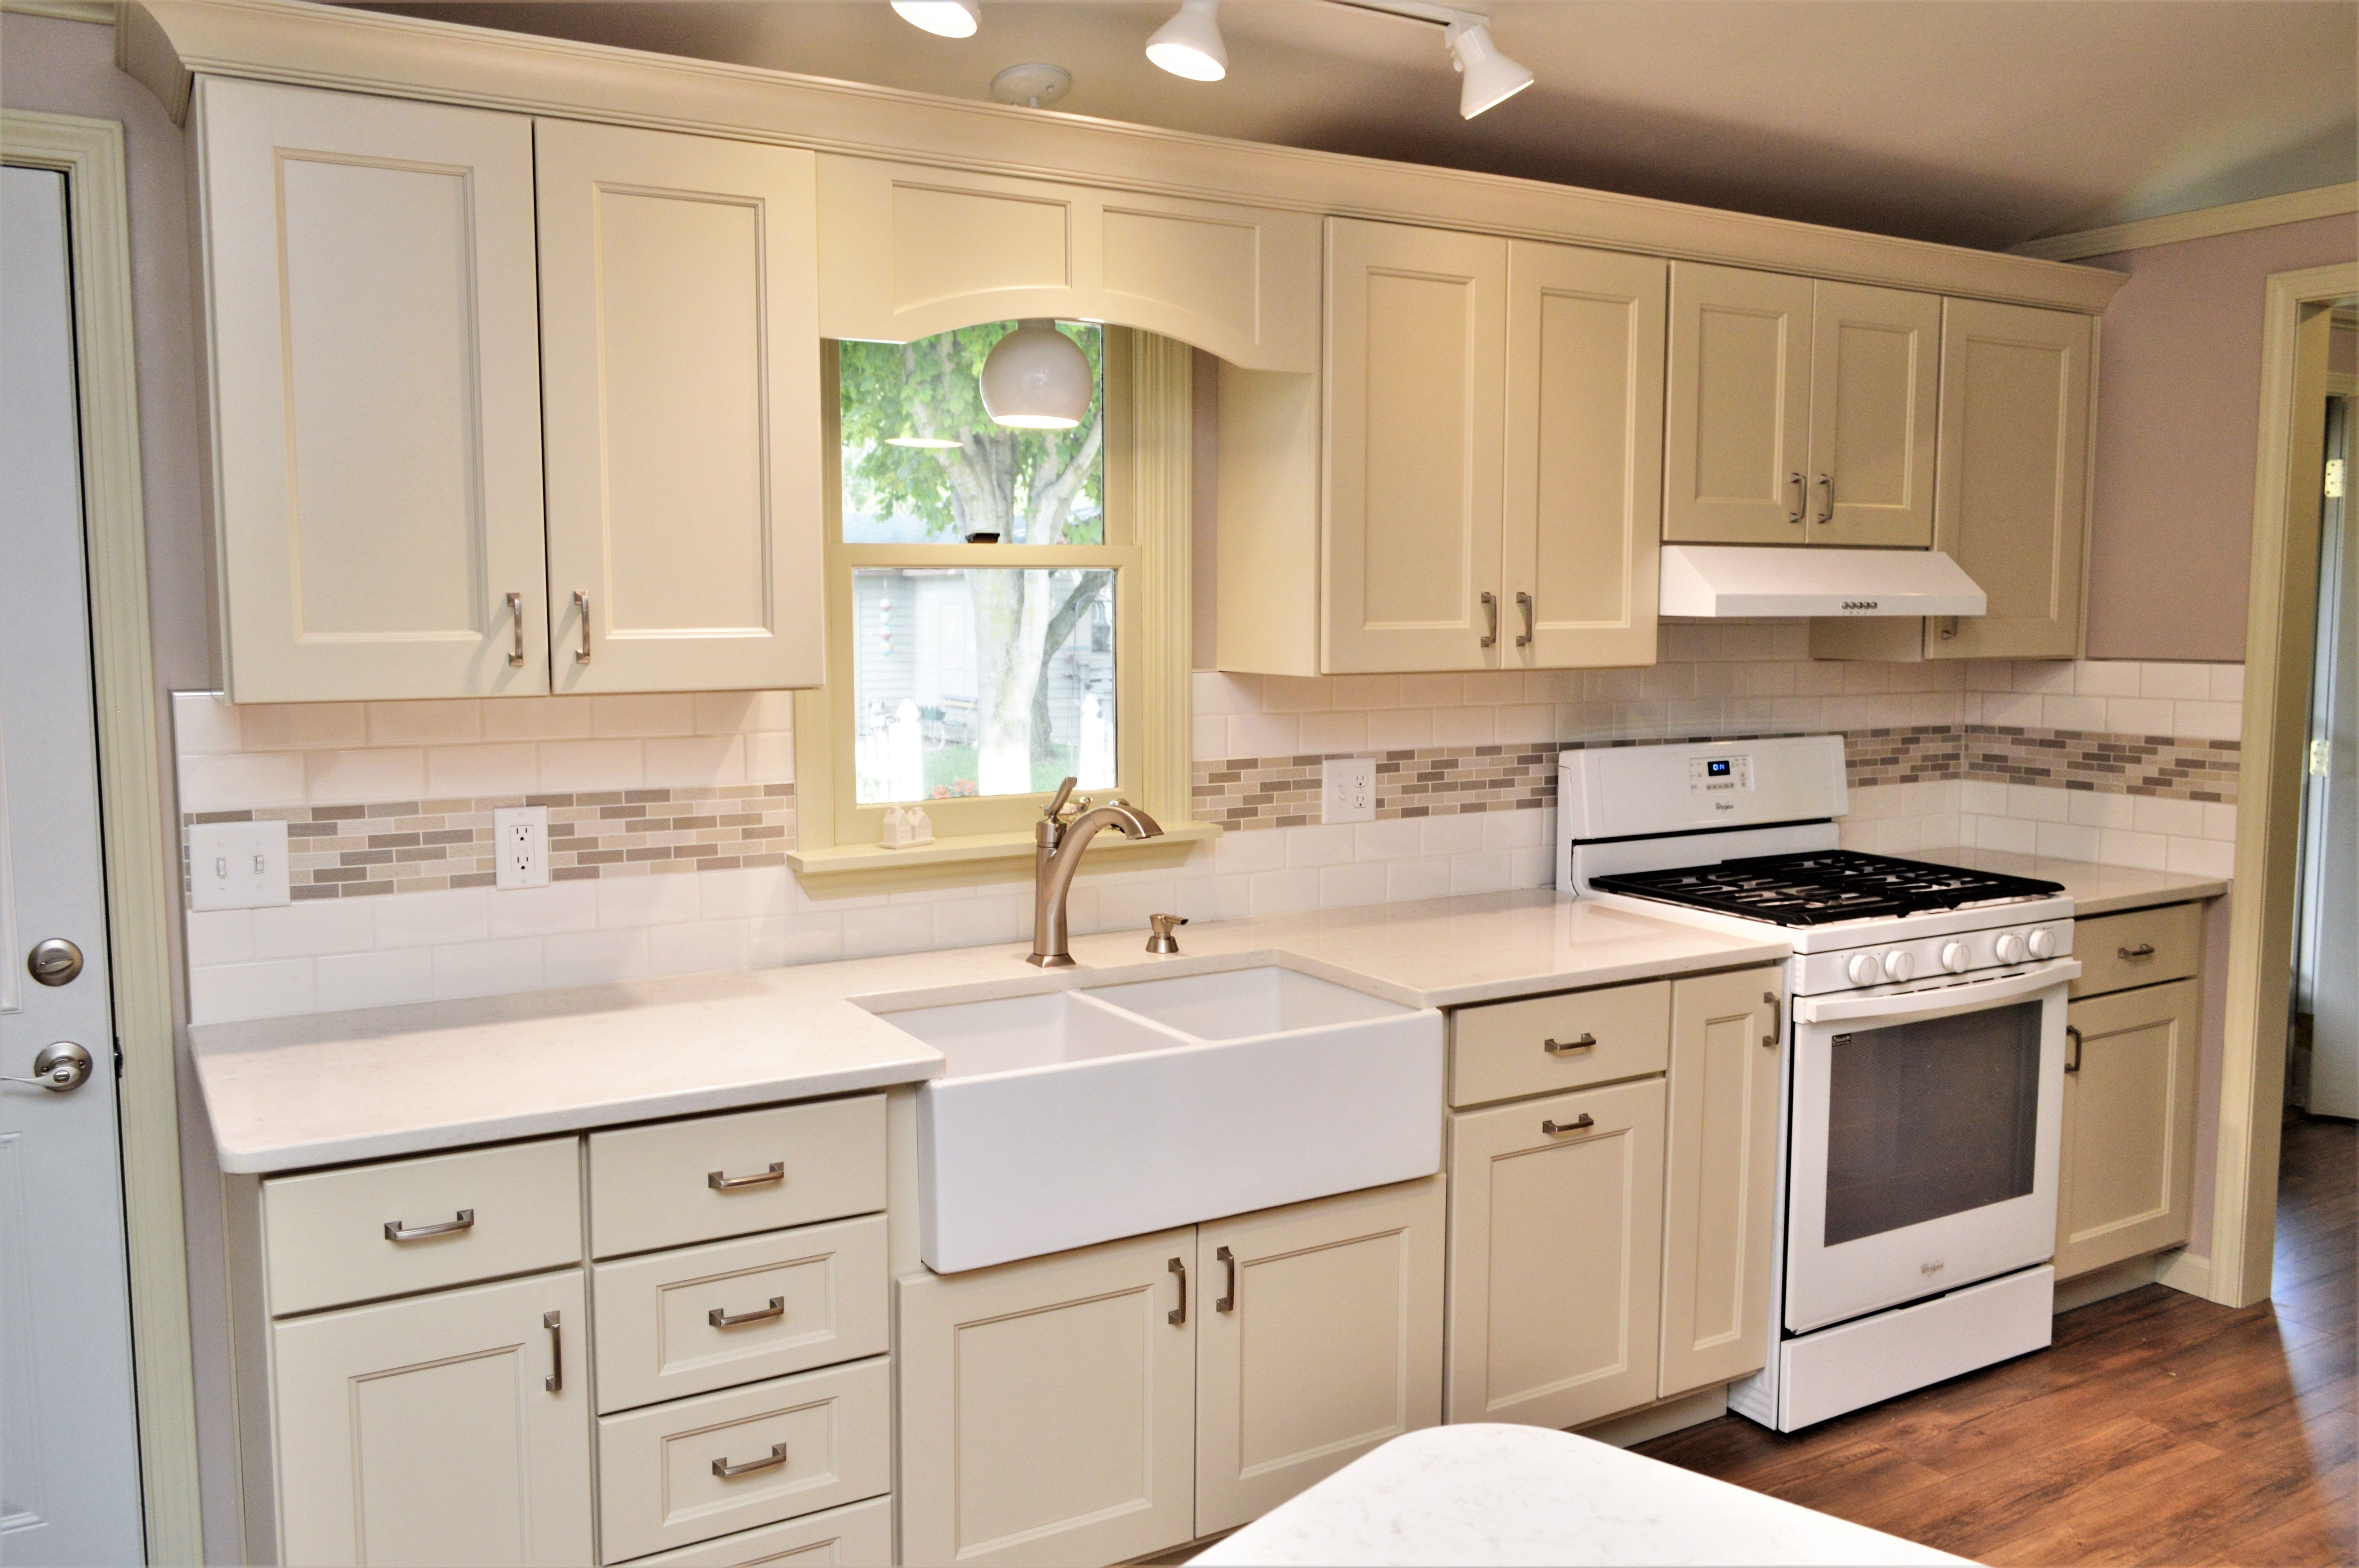 Haas Signature Collection Maple Cocoa Creamy Finish Tudor Door Style Maple Cabinets Kitchen Cabinetry